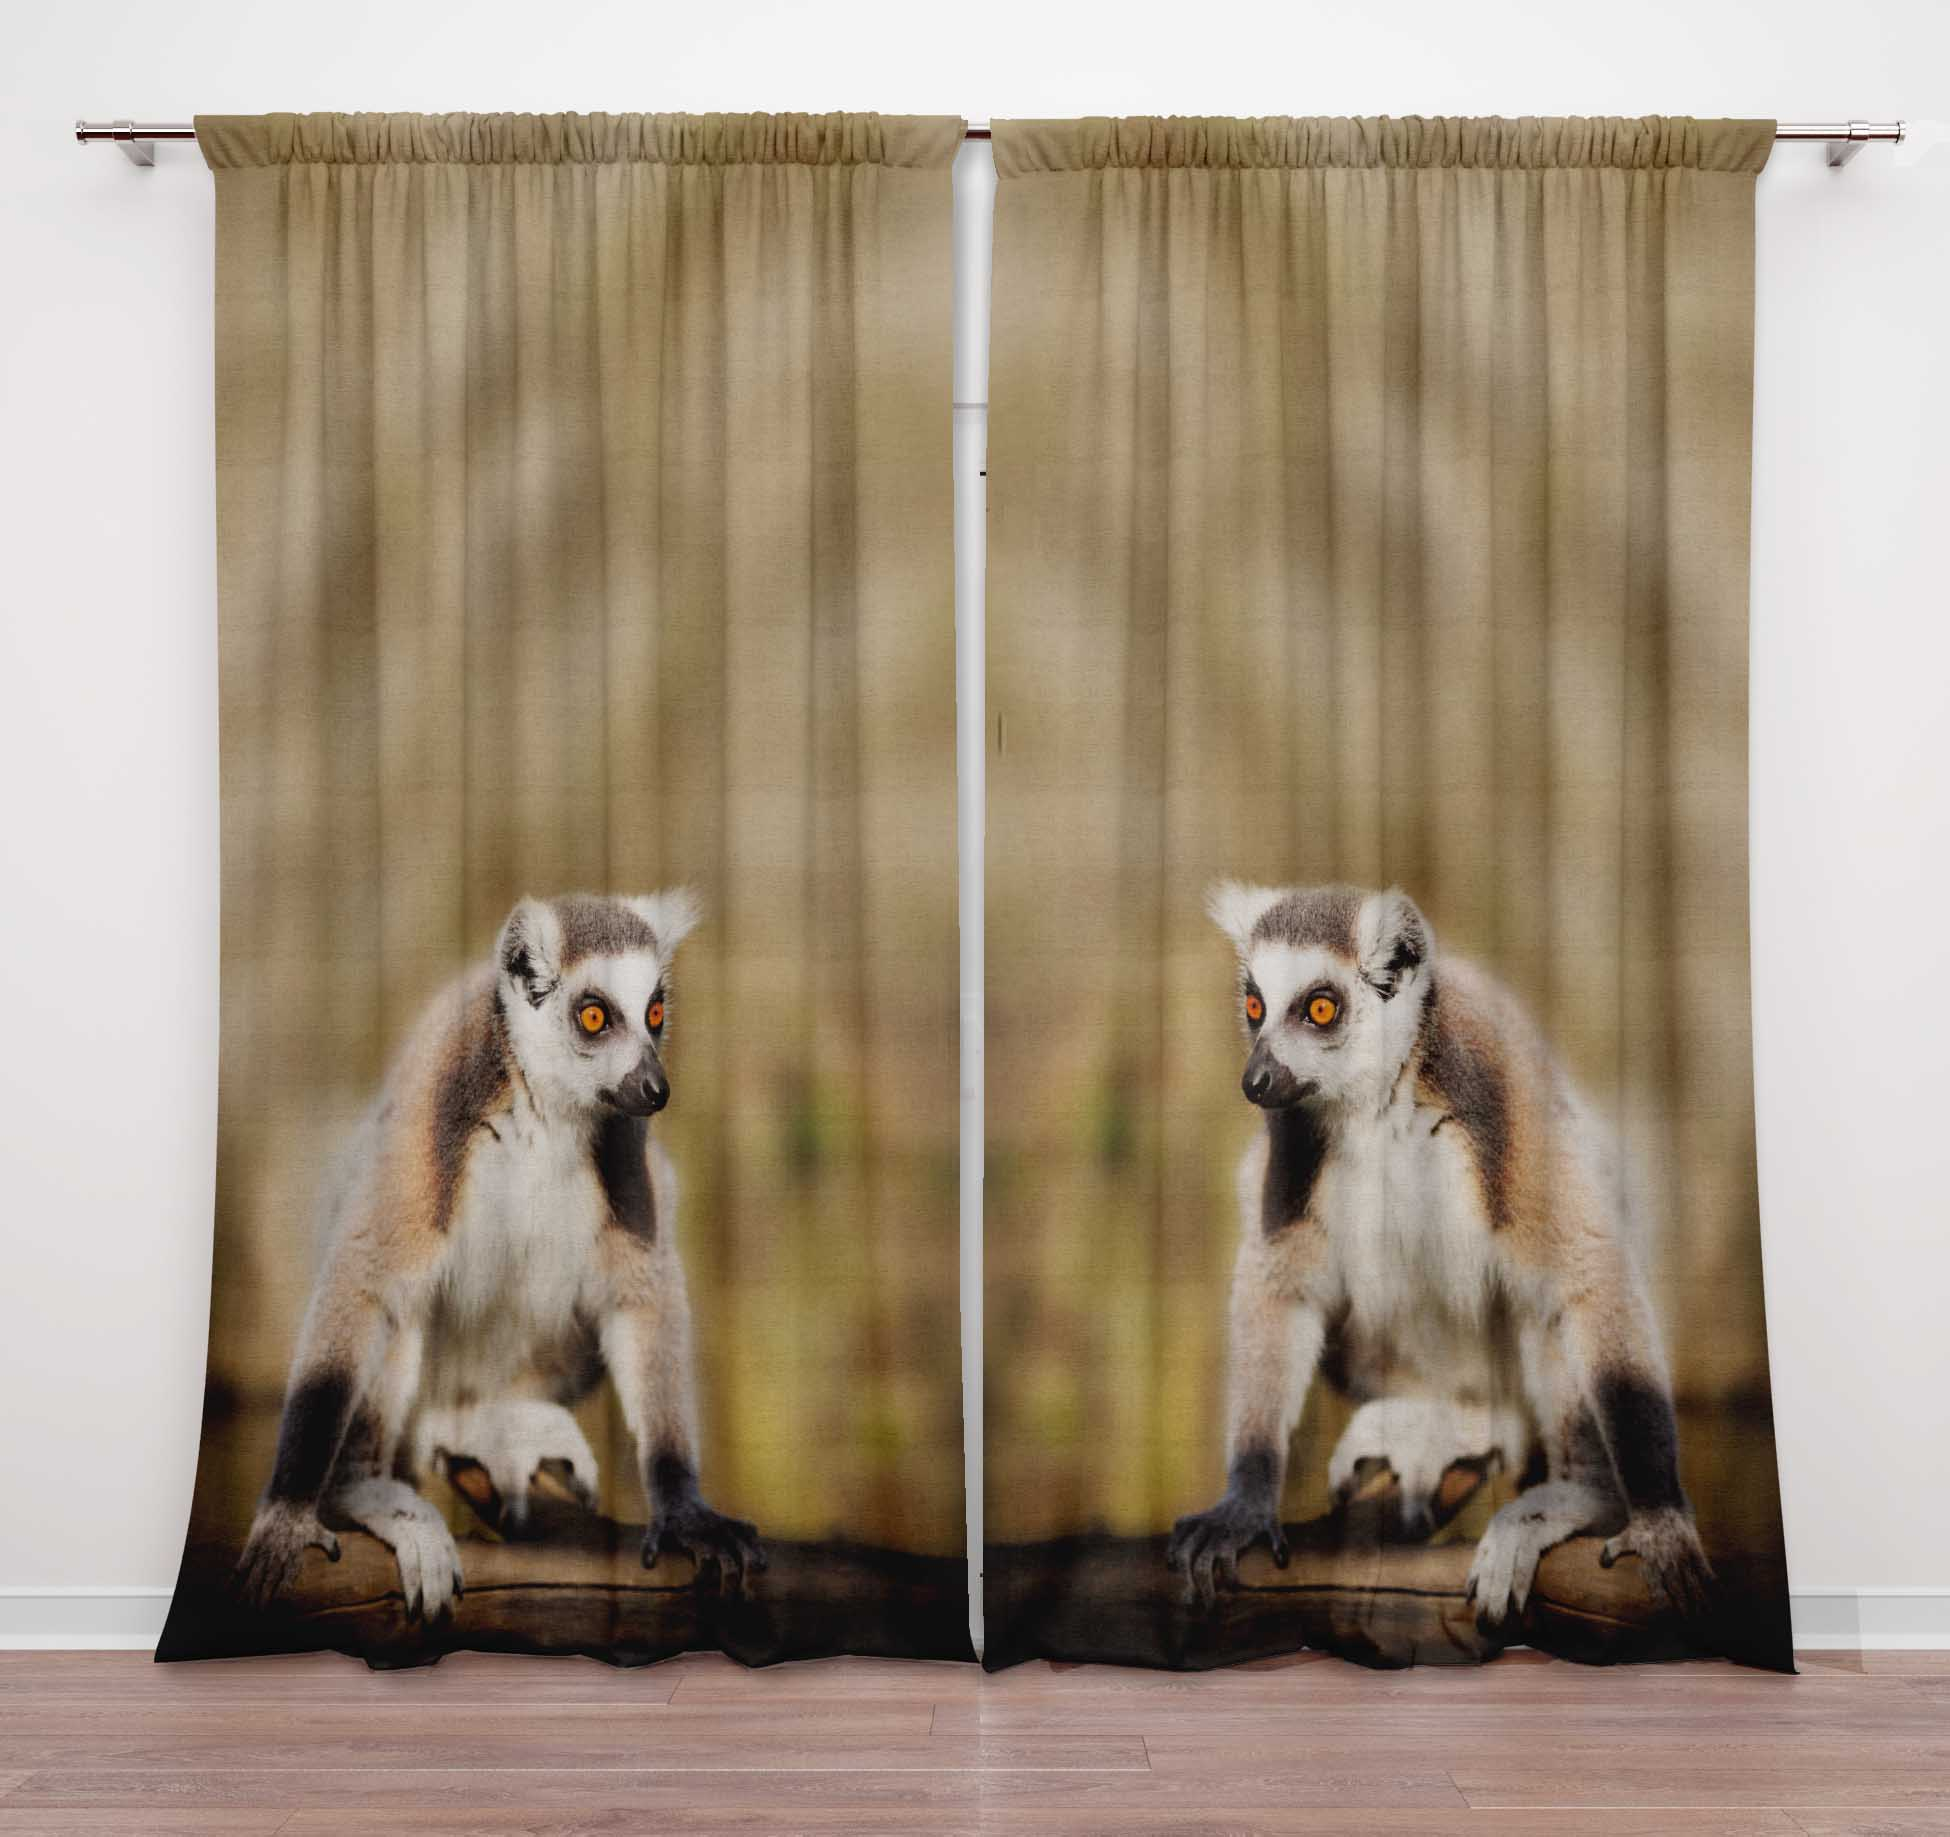 Printed Double Panel Door Curtains For Bedroom Rod Pocket Window Curtain Dcti3a Ebay